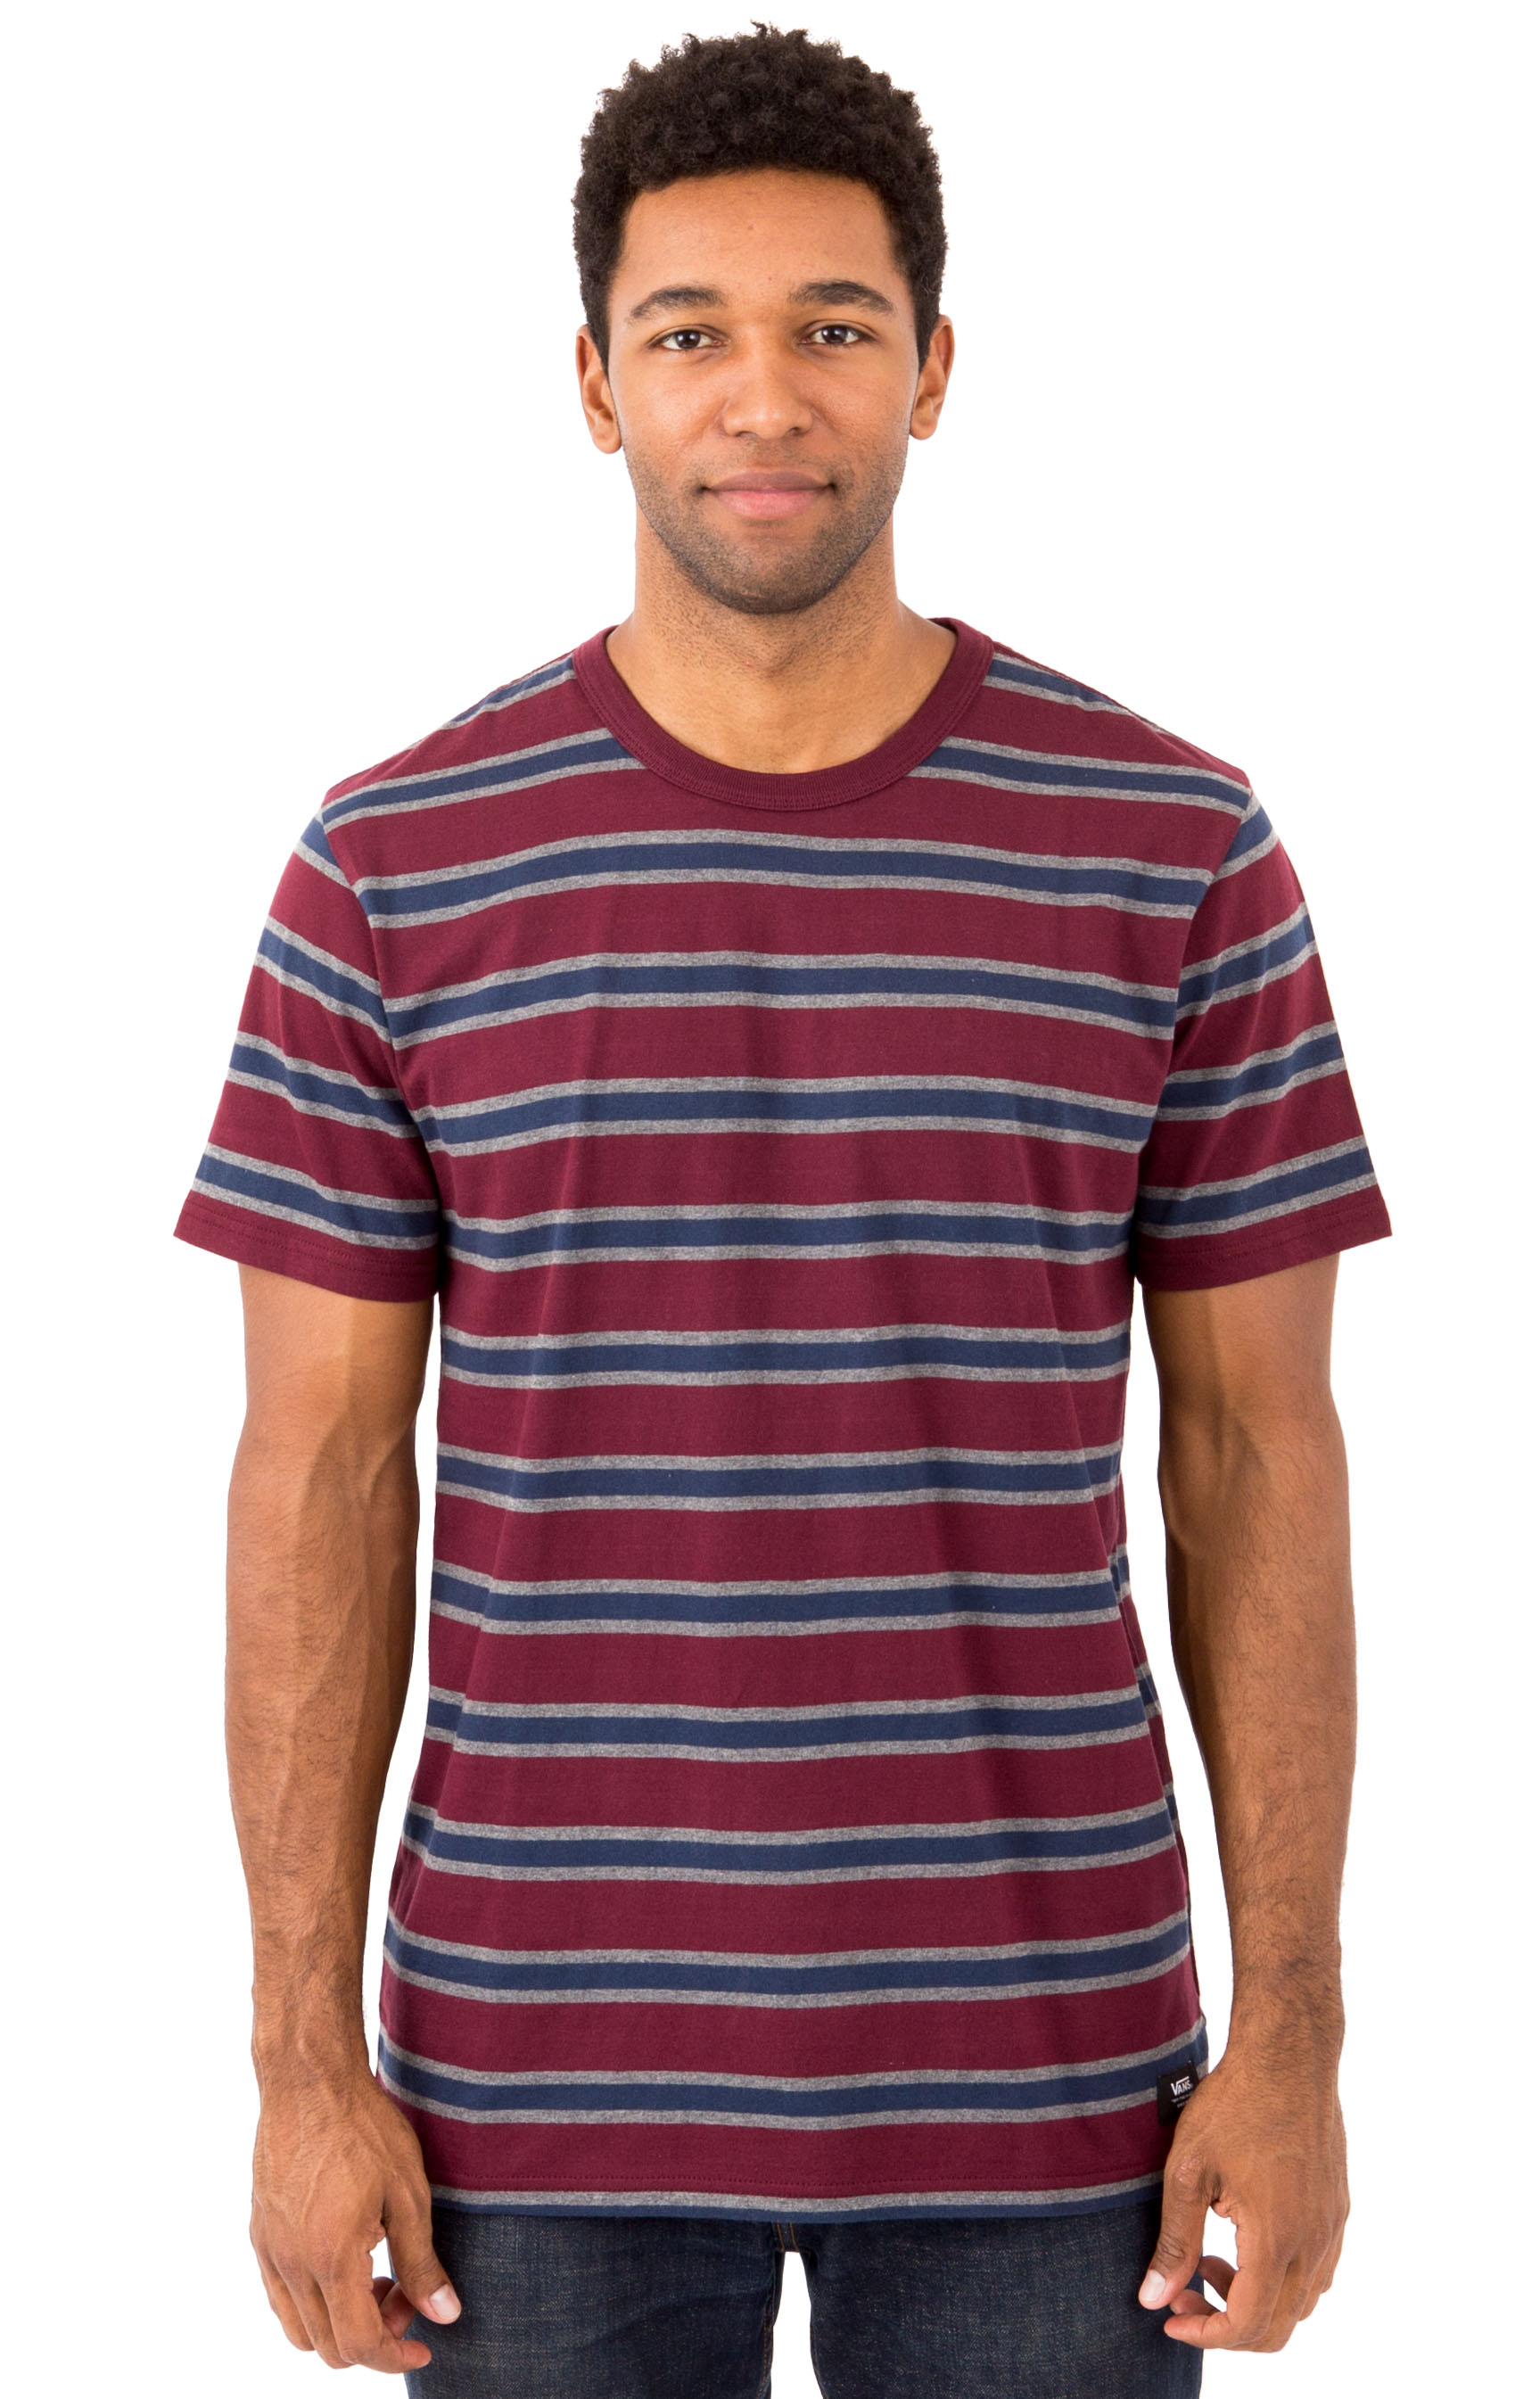 e670d855105792 Lansing T-Shirt - Port Royale